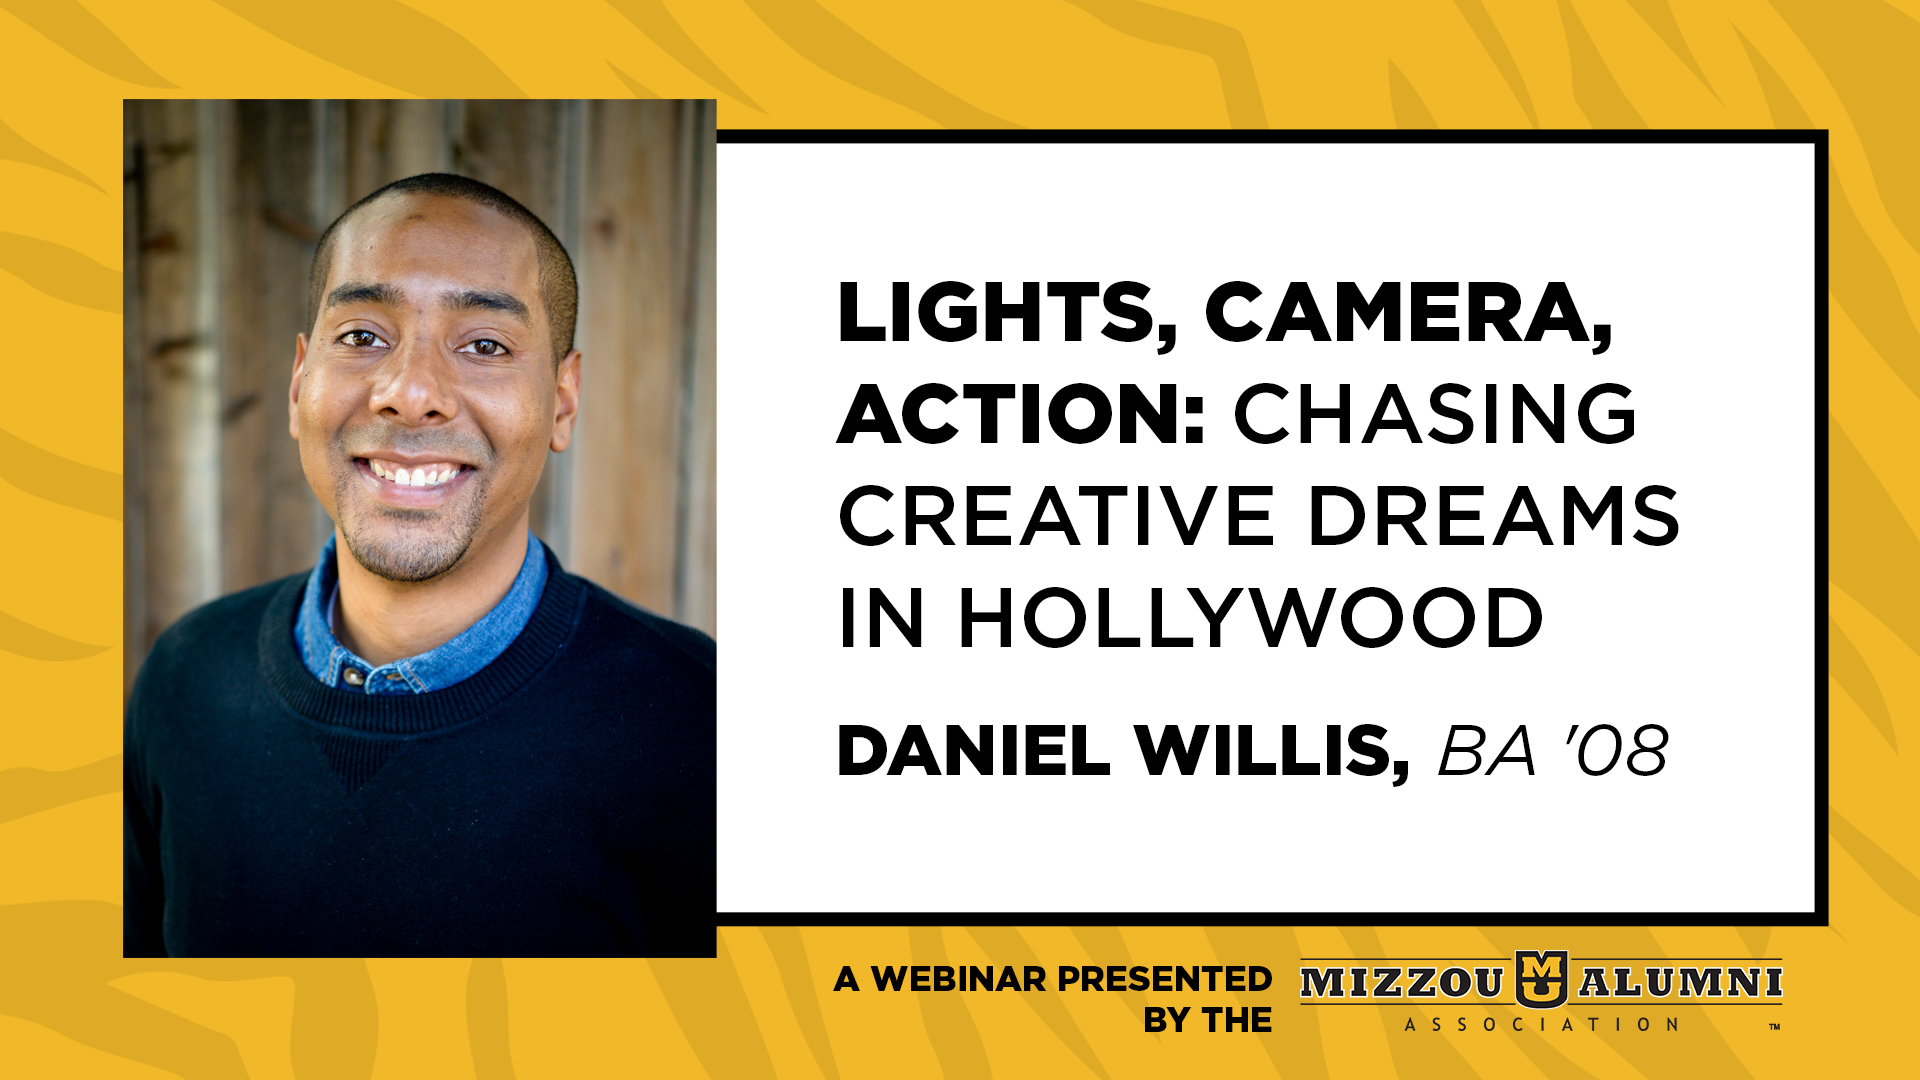 Image for Lights, Camera, Action: Chasing Creative Dreams in Hollywood webinar